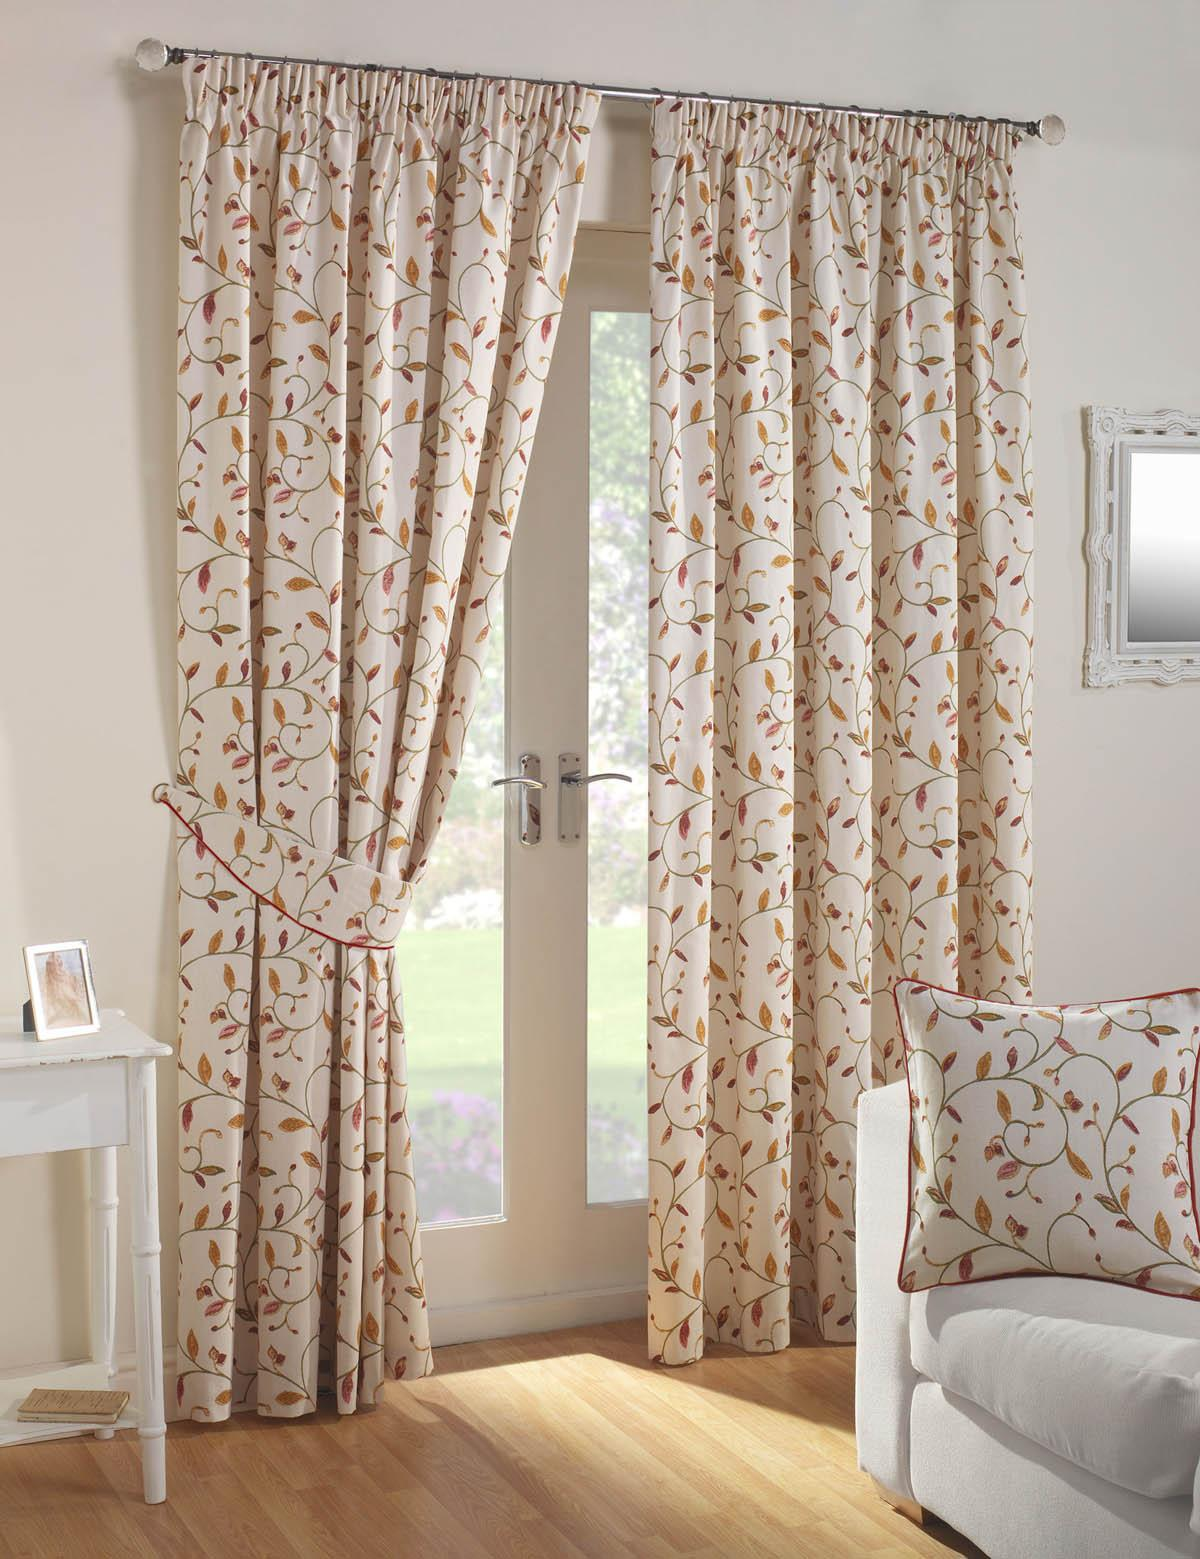 Leaf Trail Lined Curtains Autumn Free UK Delivery Terrys Fabrics - Autumn colours for the curtains